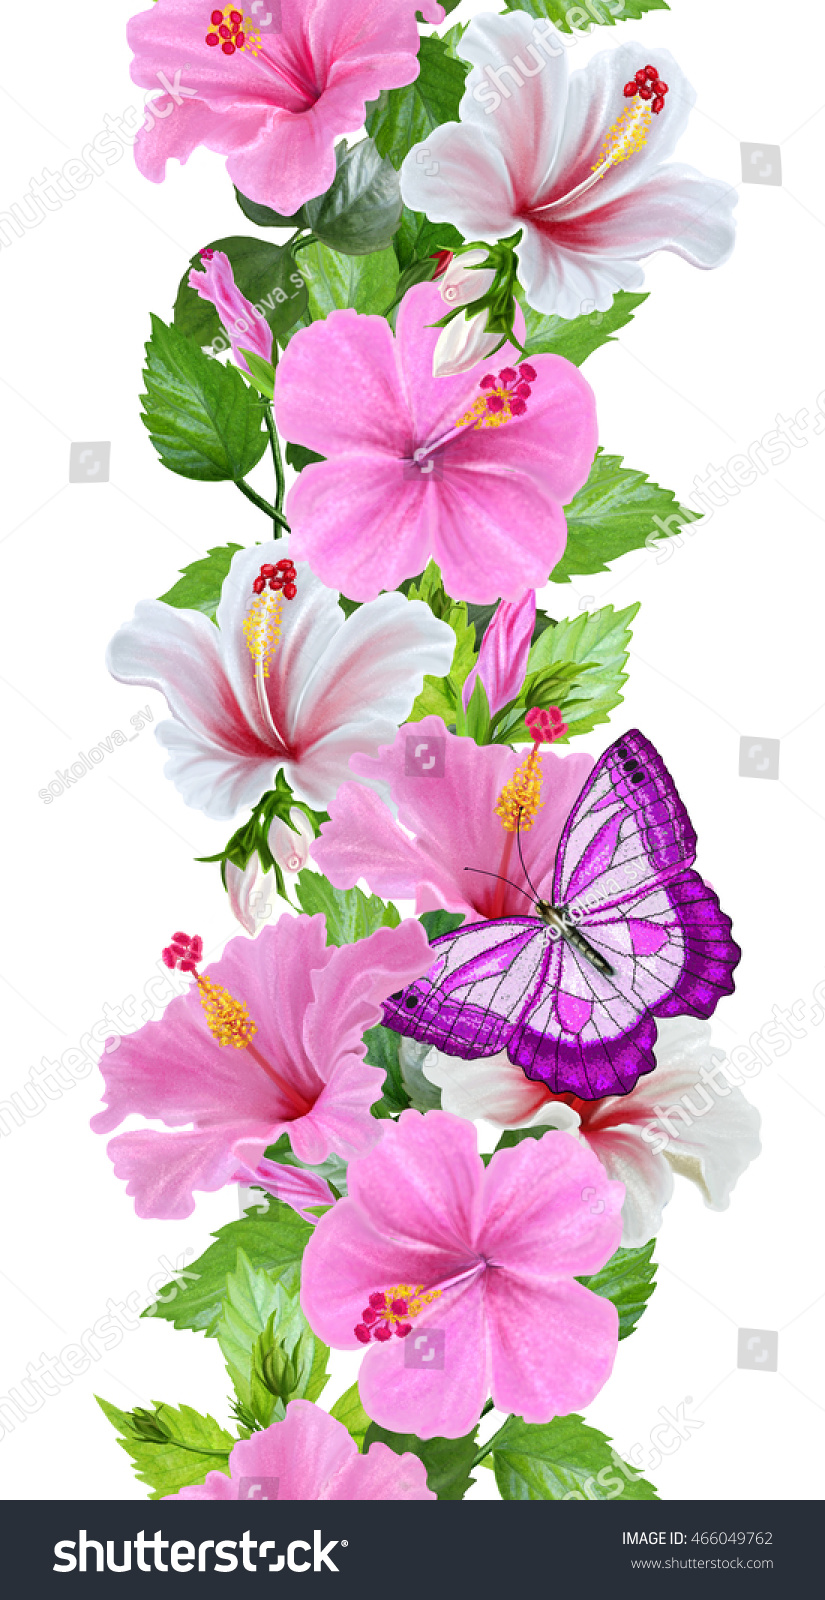 Pattern seamless vertical floral border flower stock illustration pattern seamless vertical floral border flower garland of pink and white hibiscus izmirmasajfo Gallery